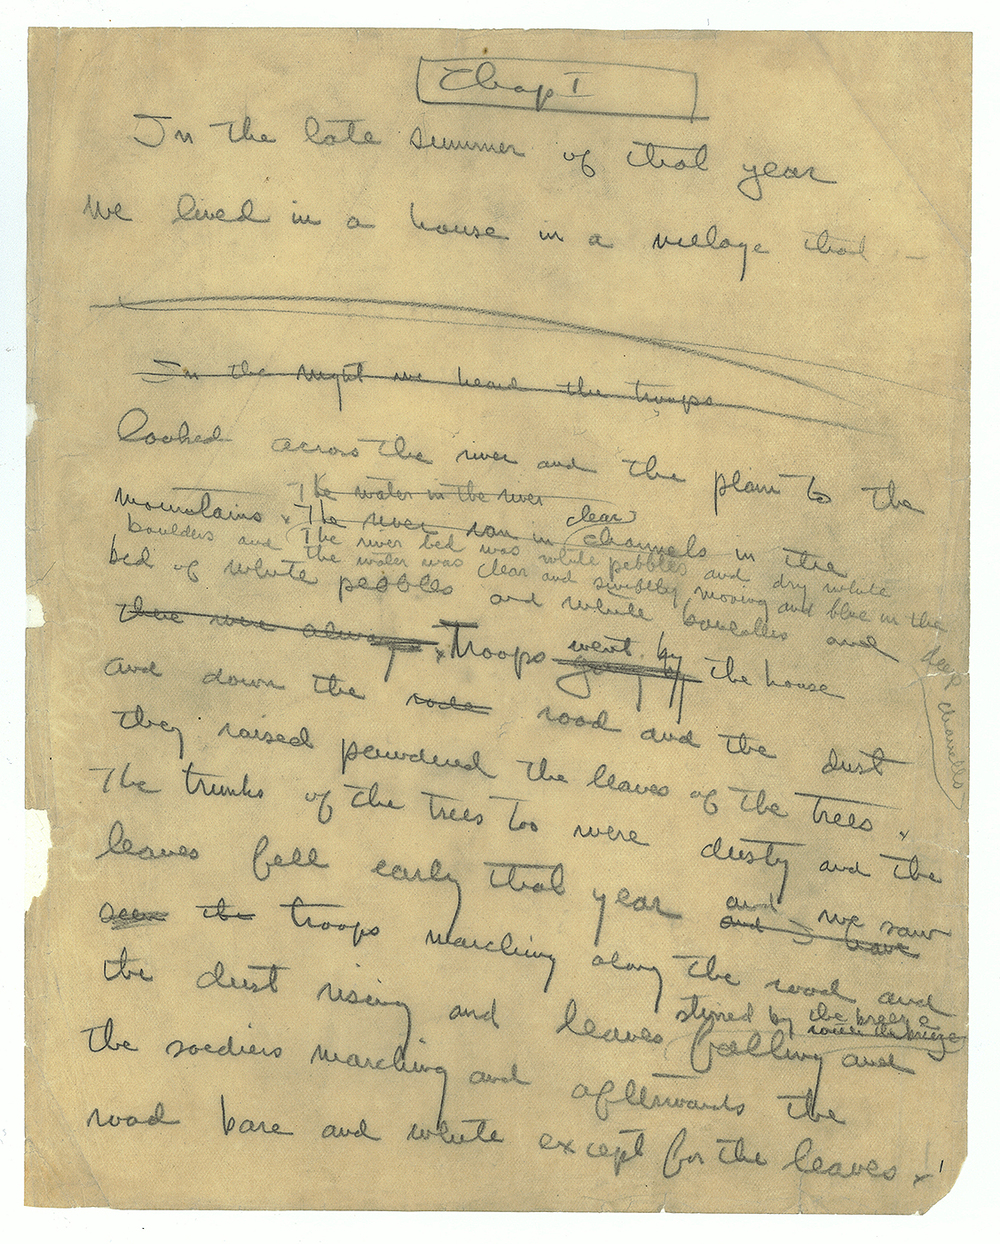 13. Farewell to Arms autograph manuscript.jpg